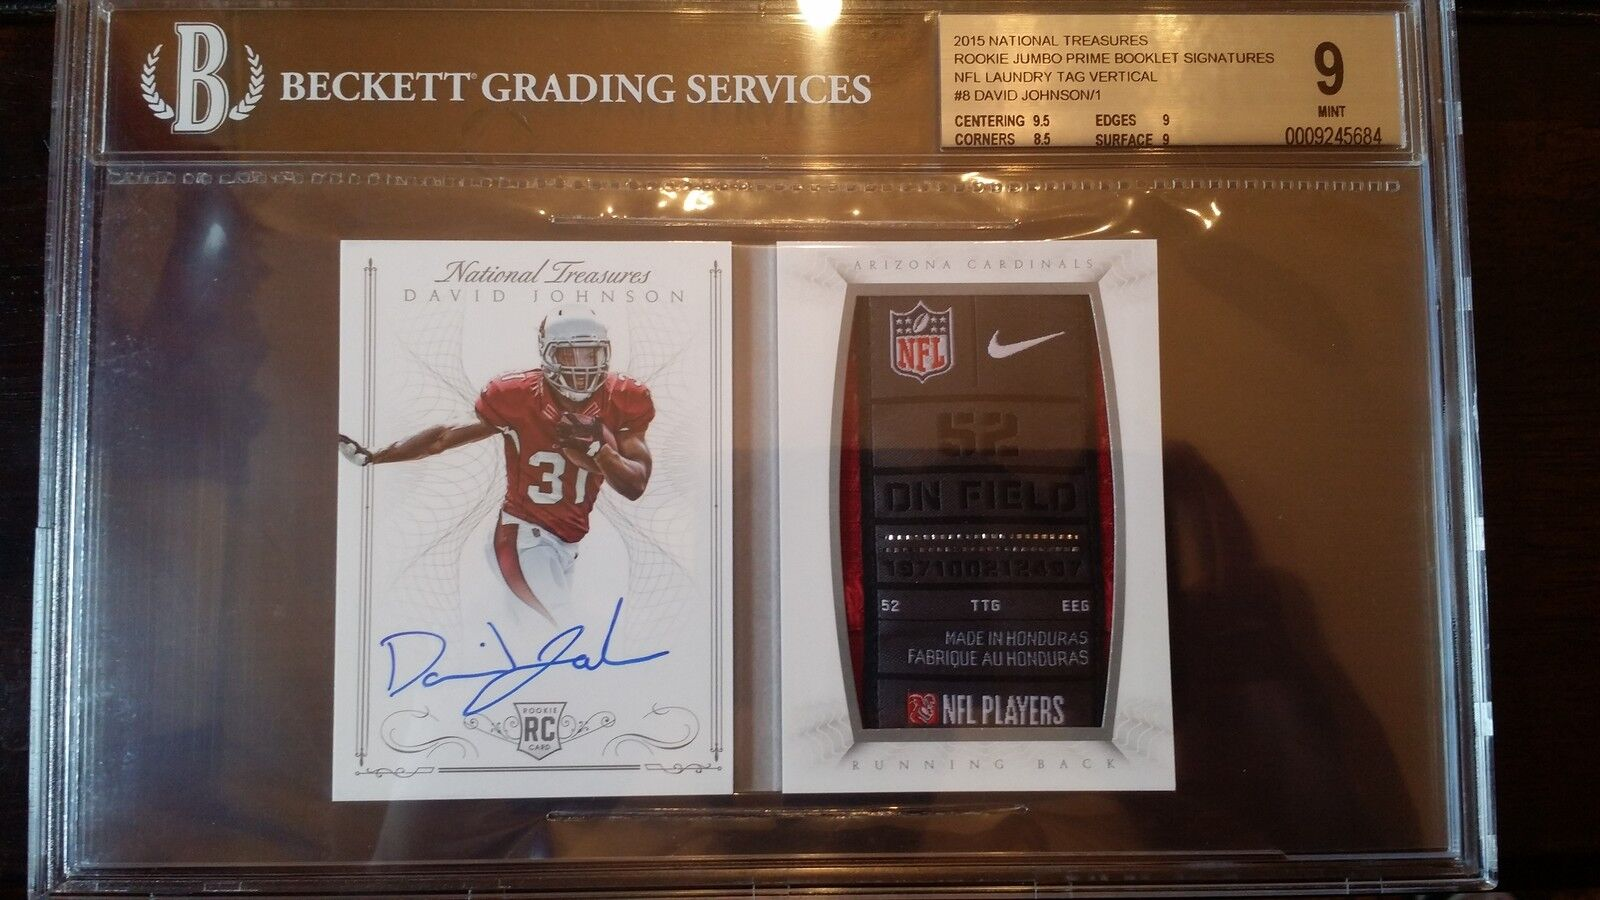 2015 1/1 DAVID JOHNSON AUTO NATIONAL TREASURES TAG/SHIELD/SWOOSH BGS 9/10 $2000+